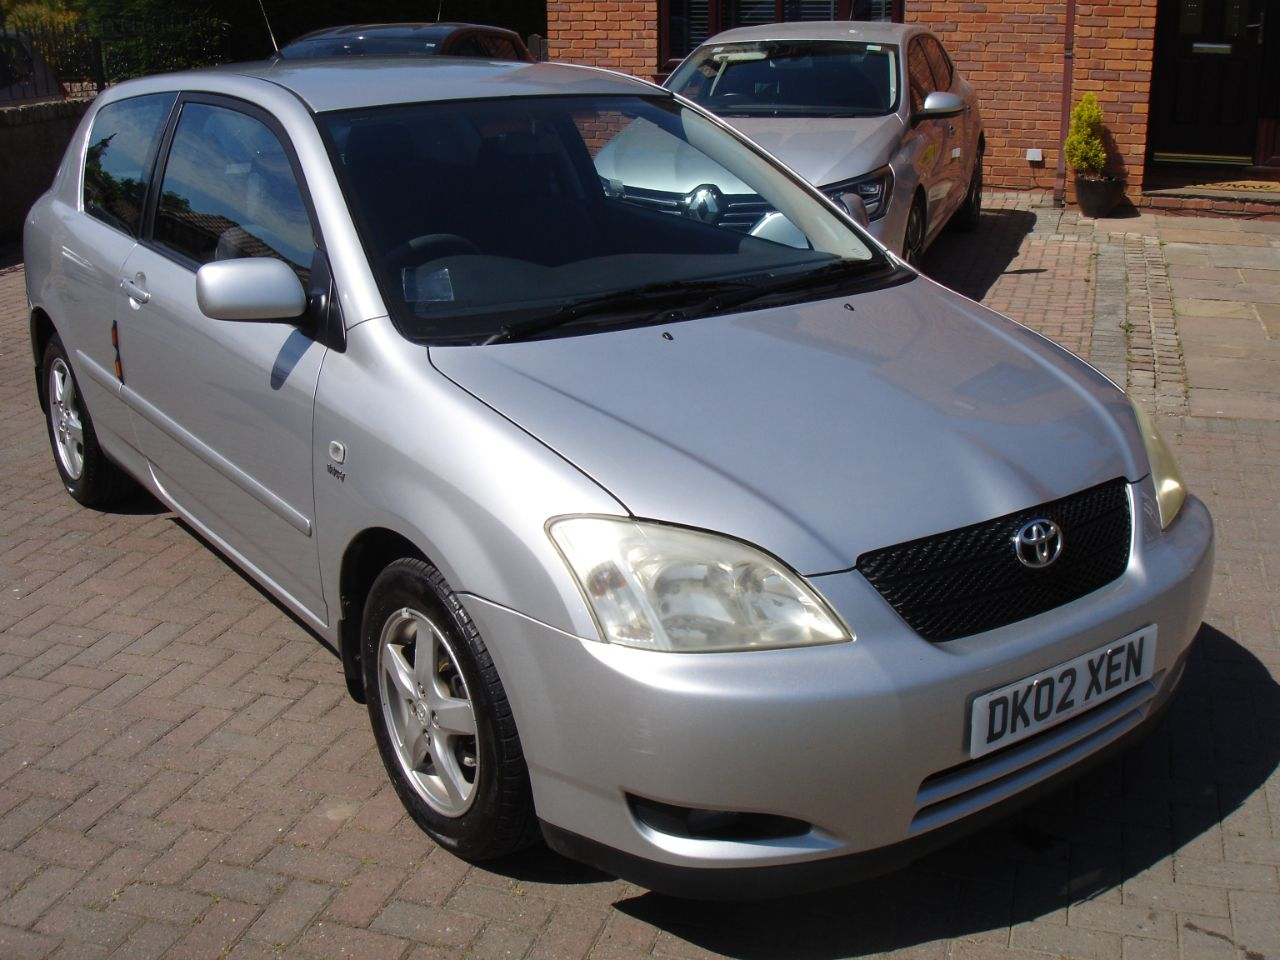 Toyota Corolla 1.4 VVT-i T3 3dr Hatchback Petrol Silver at Level Pitch Selby